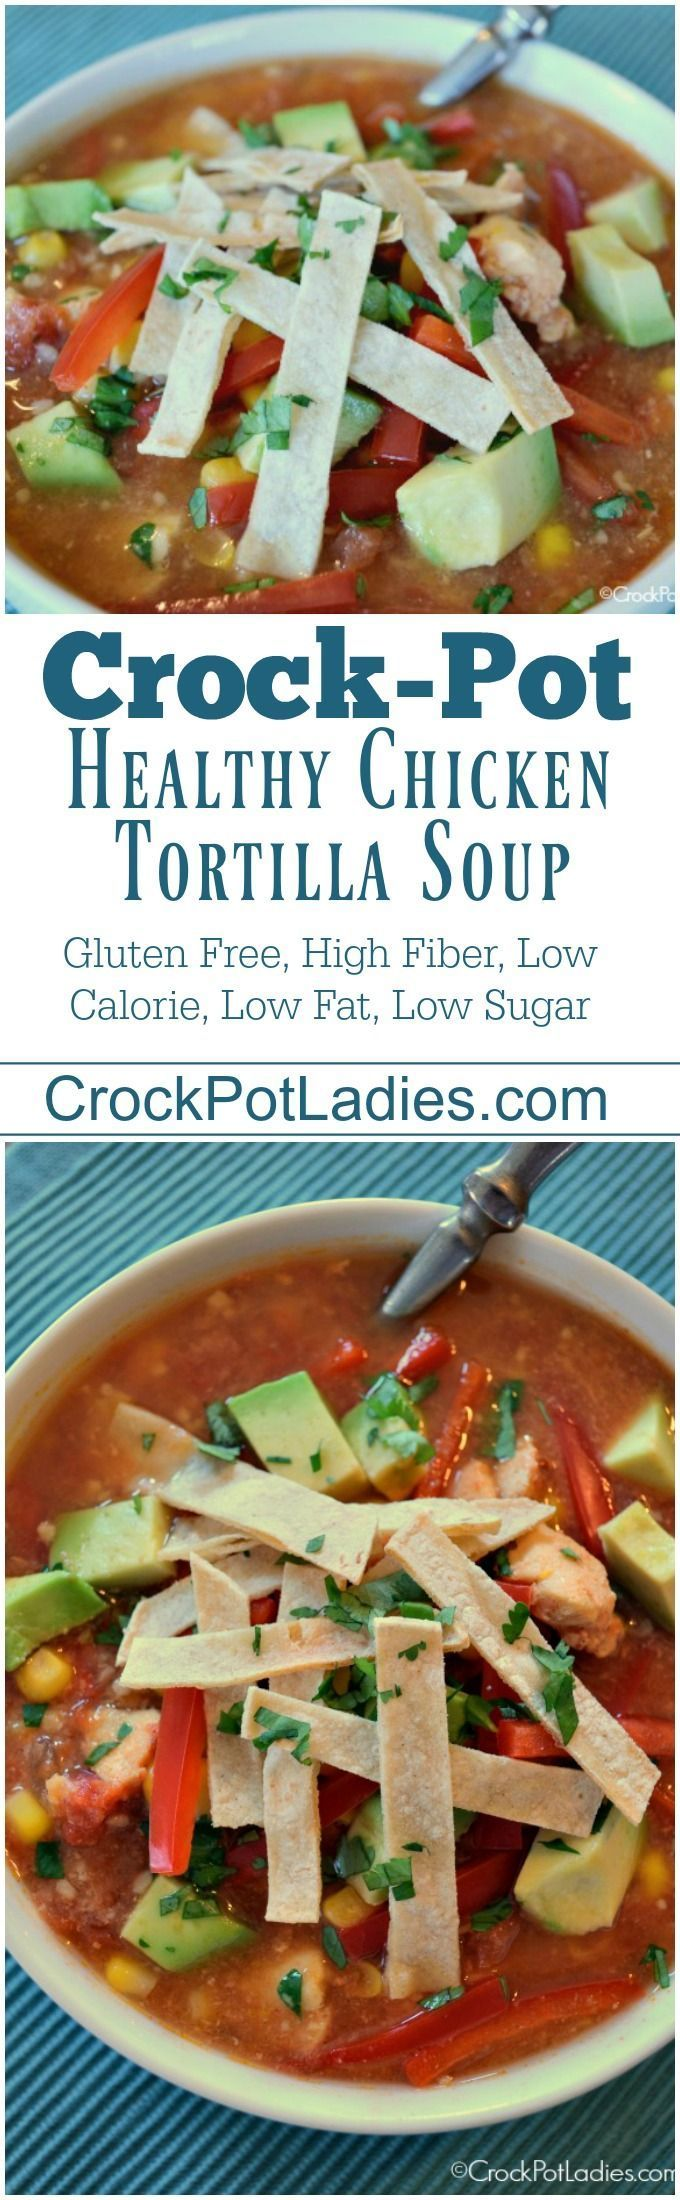 Crock-Pot Healthy Chicken Tortilla Soup - Warm up to this healthy Mexican inspired dish with recipe for Slow Cooker Healthy Chicken Tortilla Soup. So easy, fresh and satisfying! via @CrockPotLadies